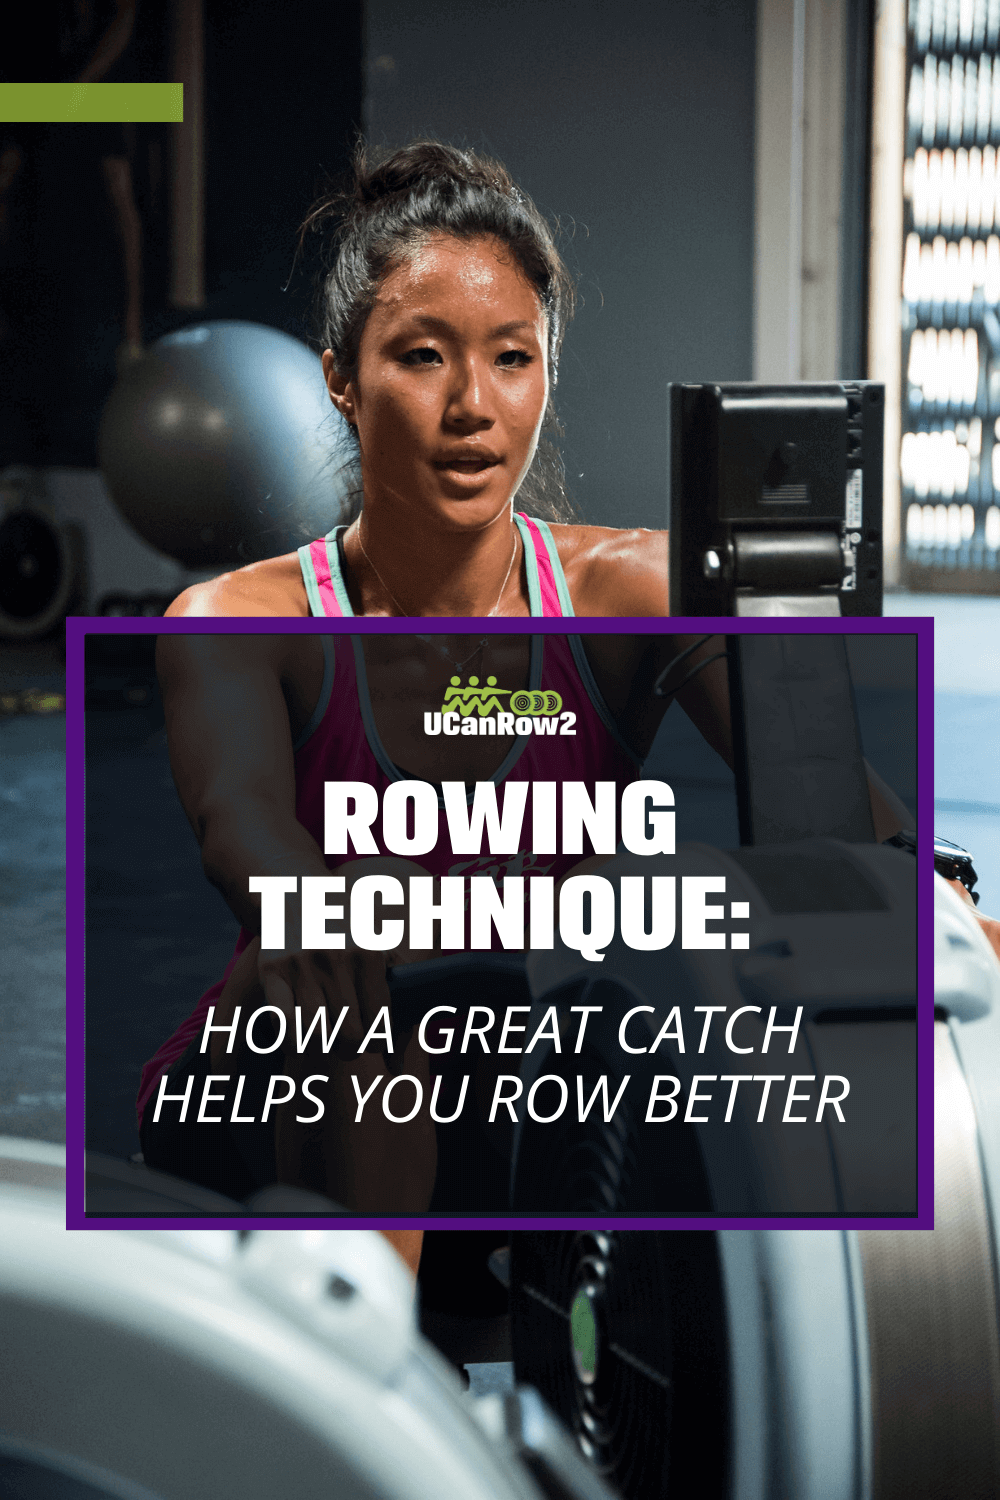 a woman sweating because she is doing indoor rowing